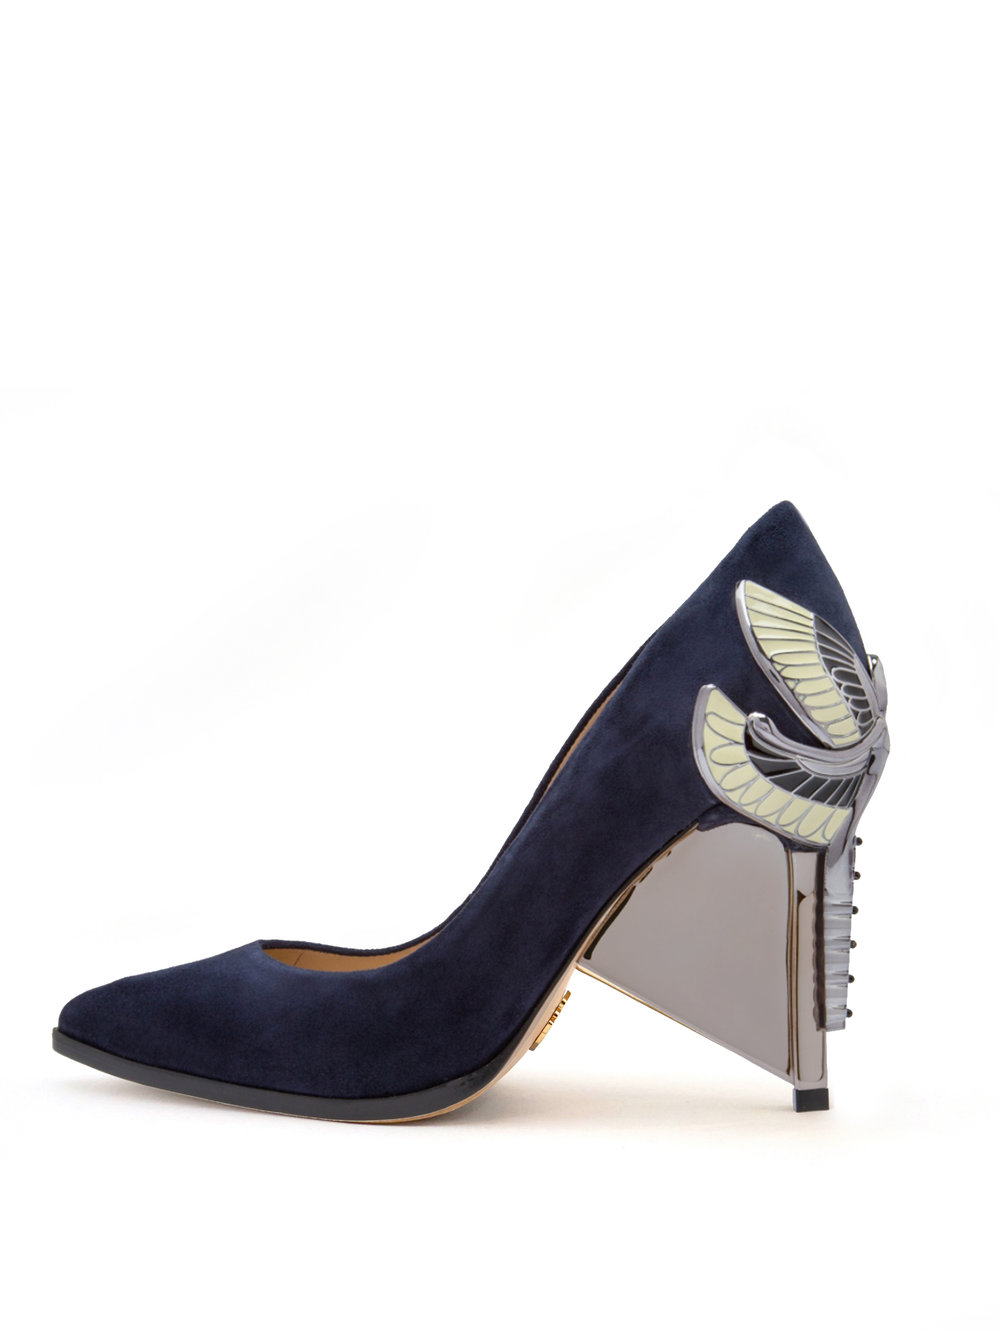 AURORA PUMP - NAVY KID SUEDE